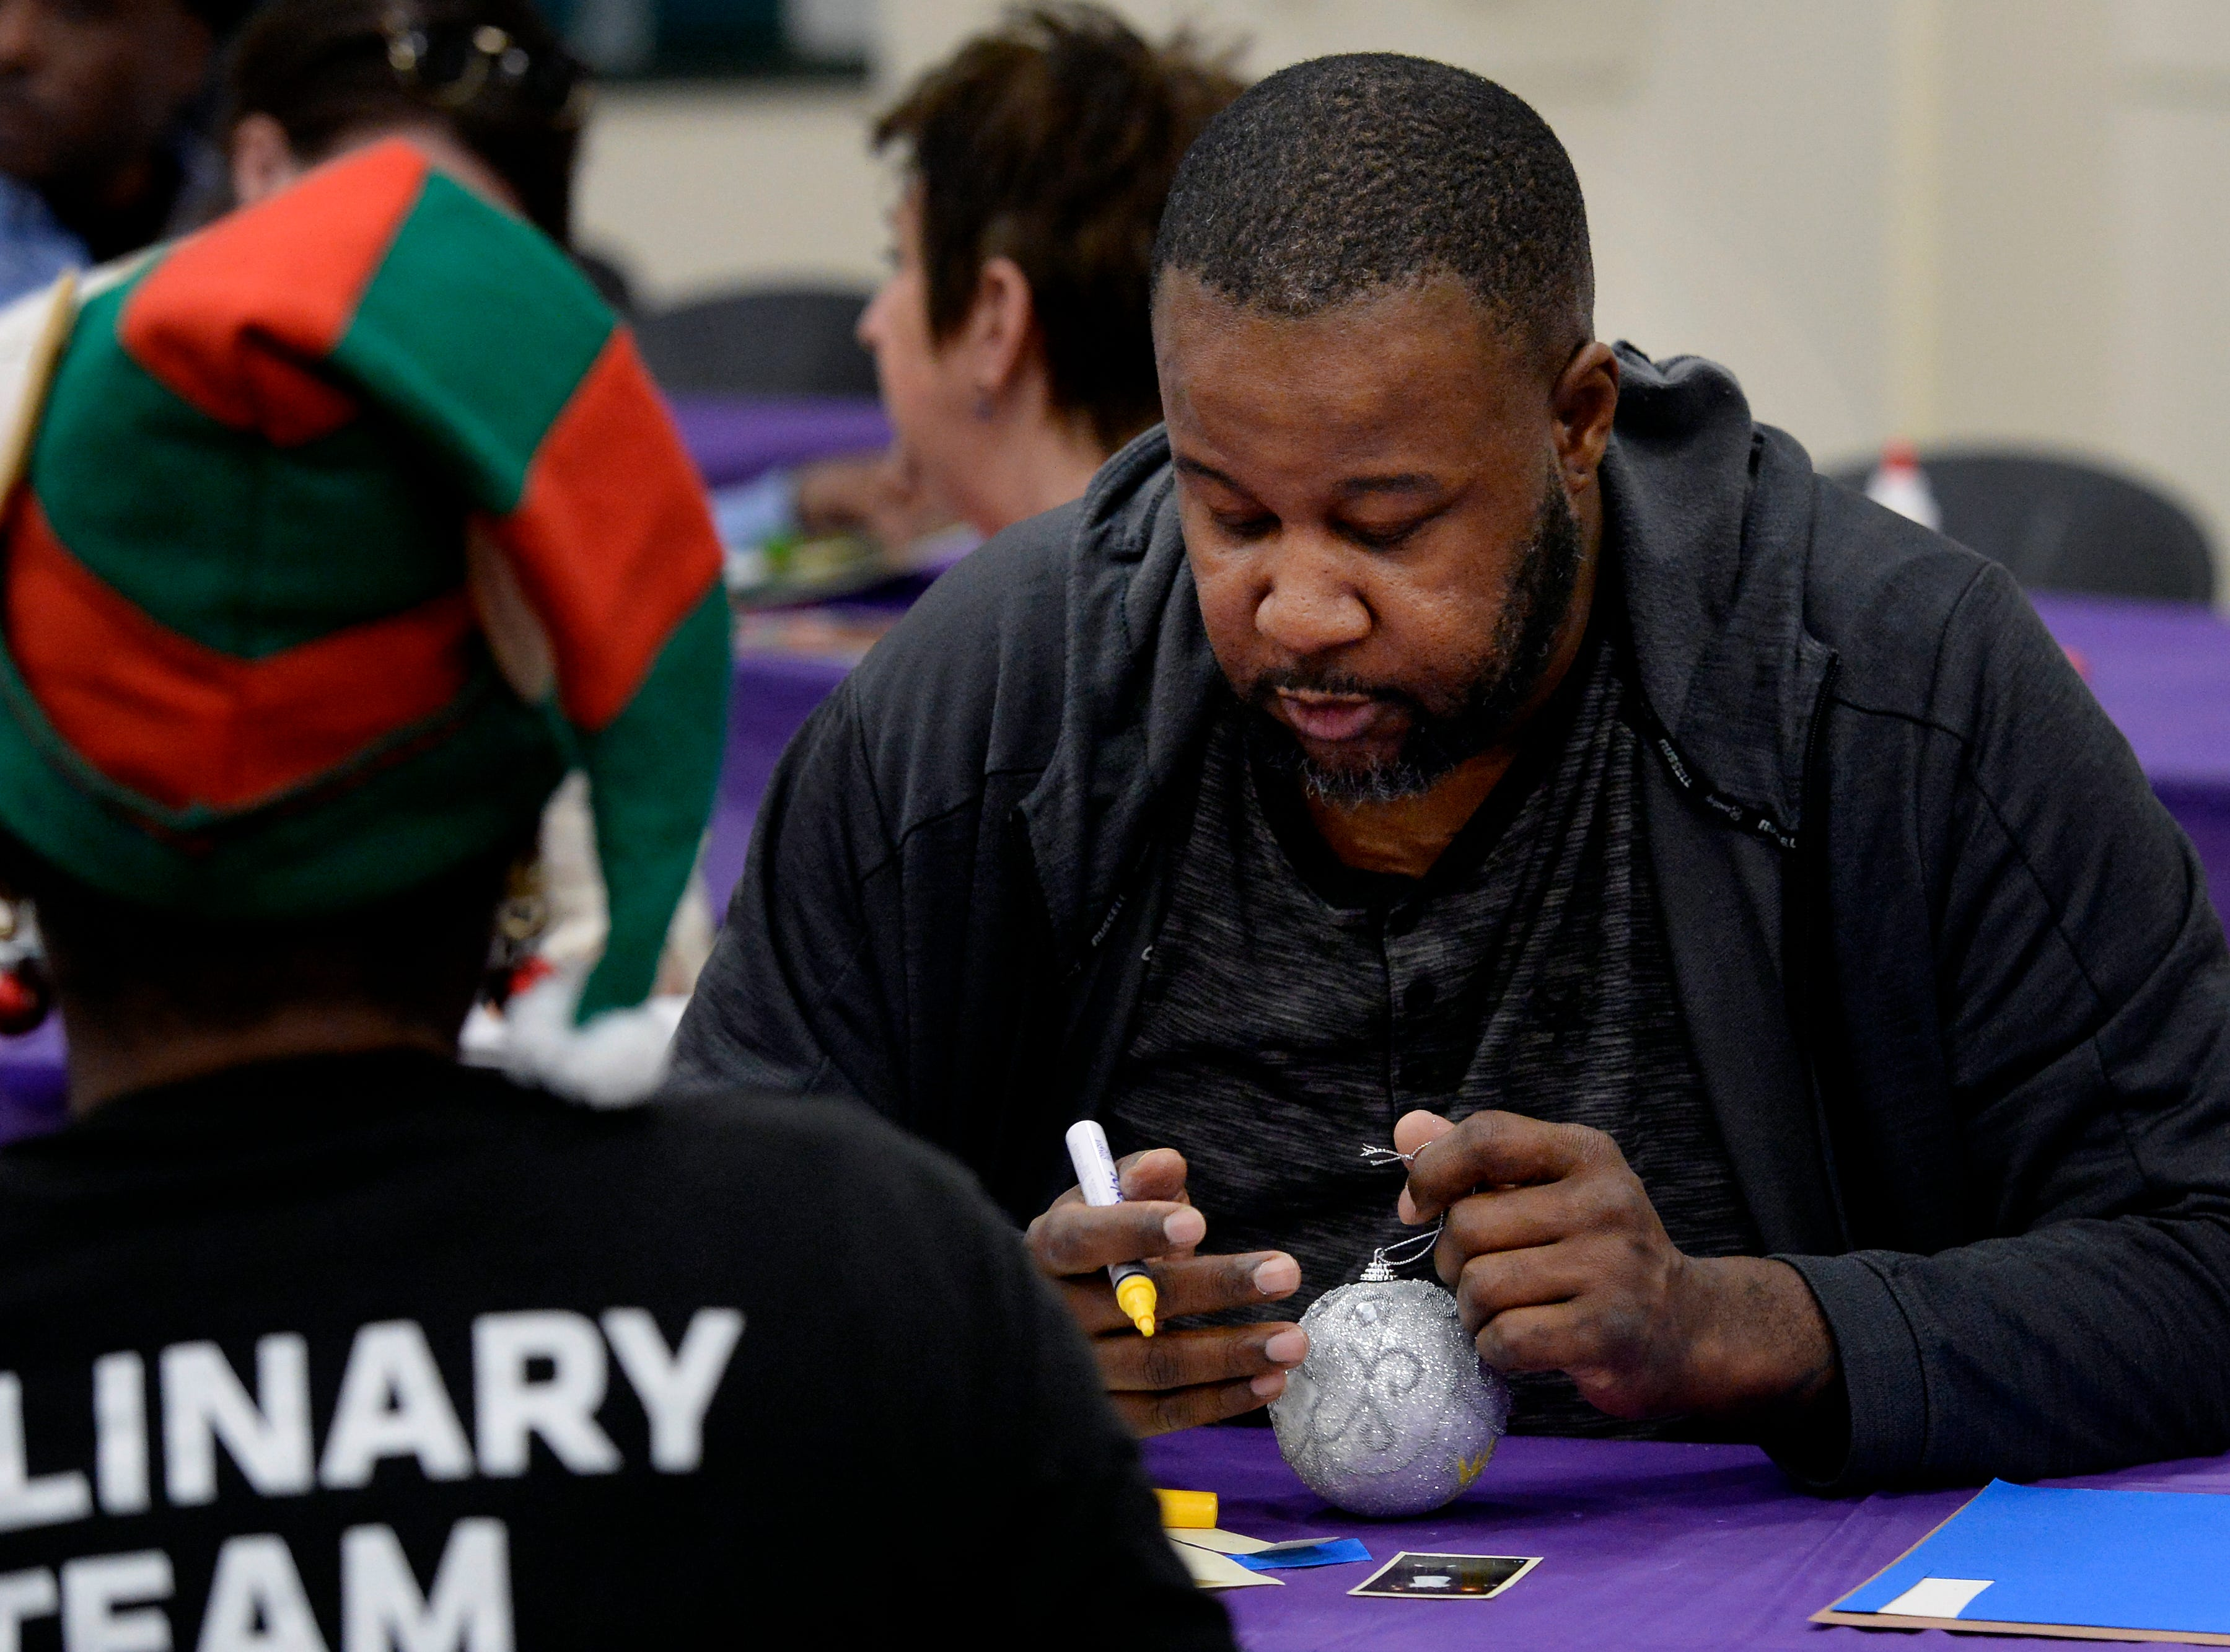 Aland Harris Sr. makes a Christmas ornament in memory of his son, Alando Harris II, at the Metro Police Department's North Precinct on Tuesday, Dec. 11, 2018, in Nashville, Tenn. The Victim Intervention Program is a community outreach program through the police department.